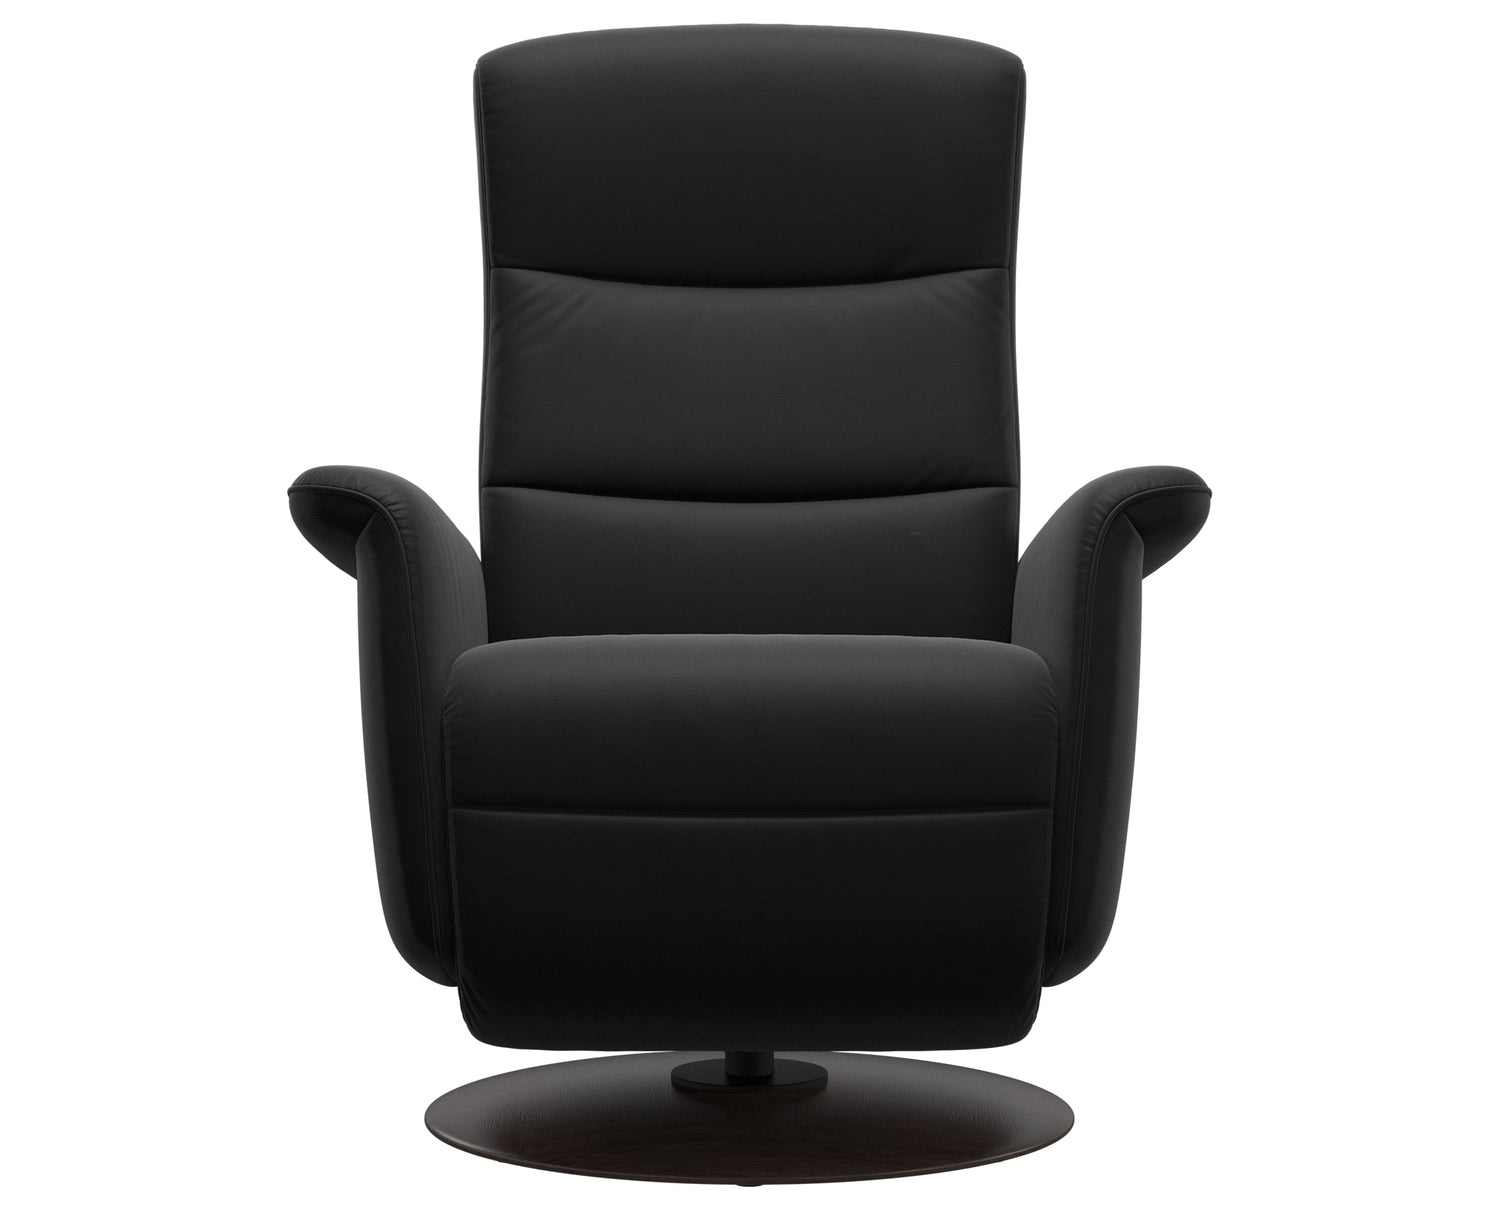 Paloma Leather Black S/M/L & Wenge Base | Stressless Mike Recliner | Valley Ridge Furniture